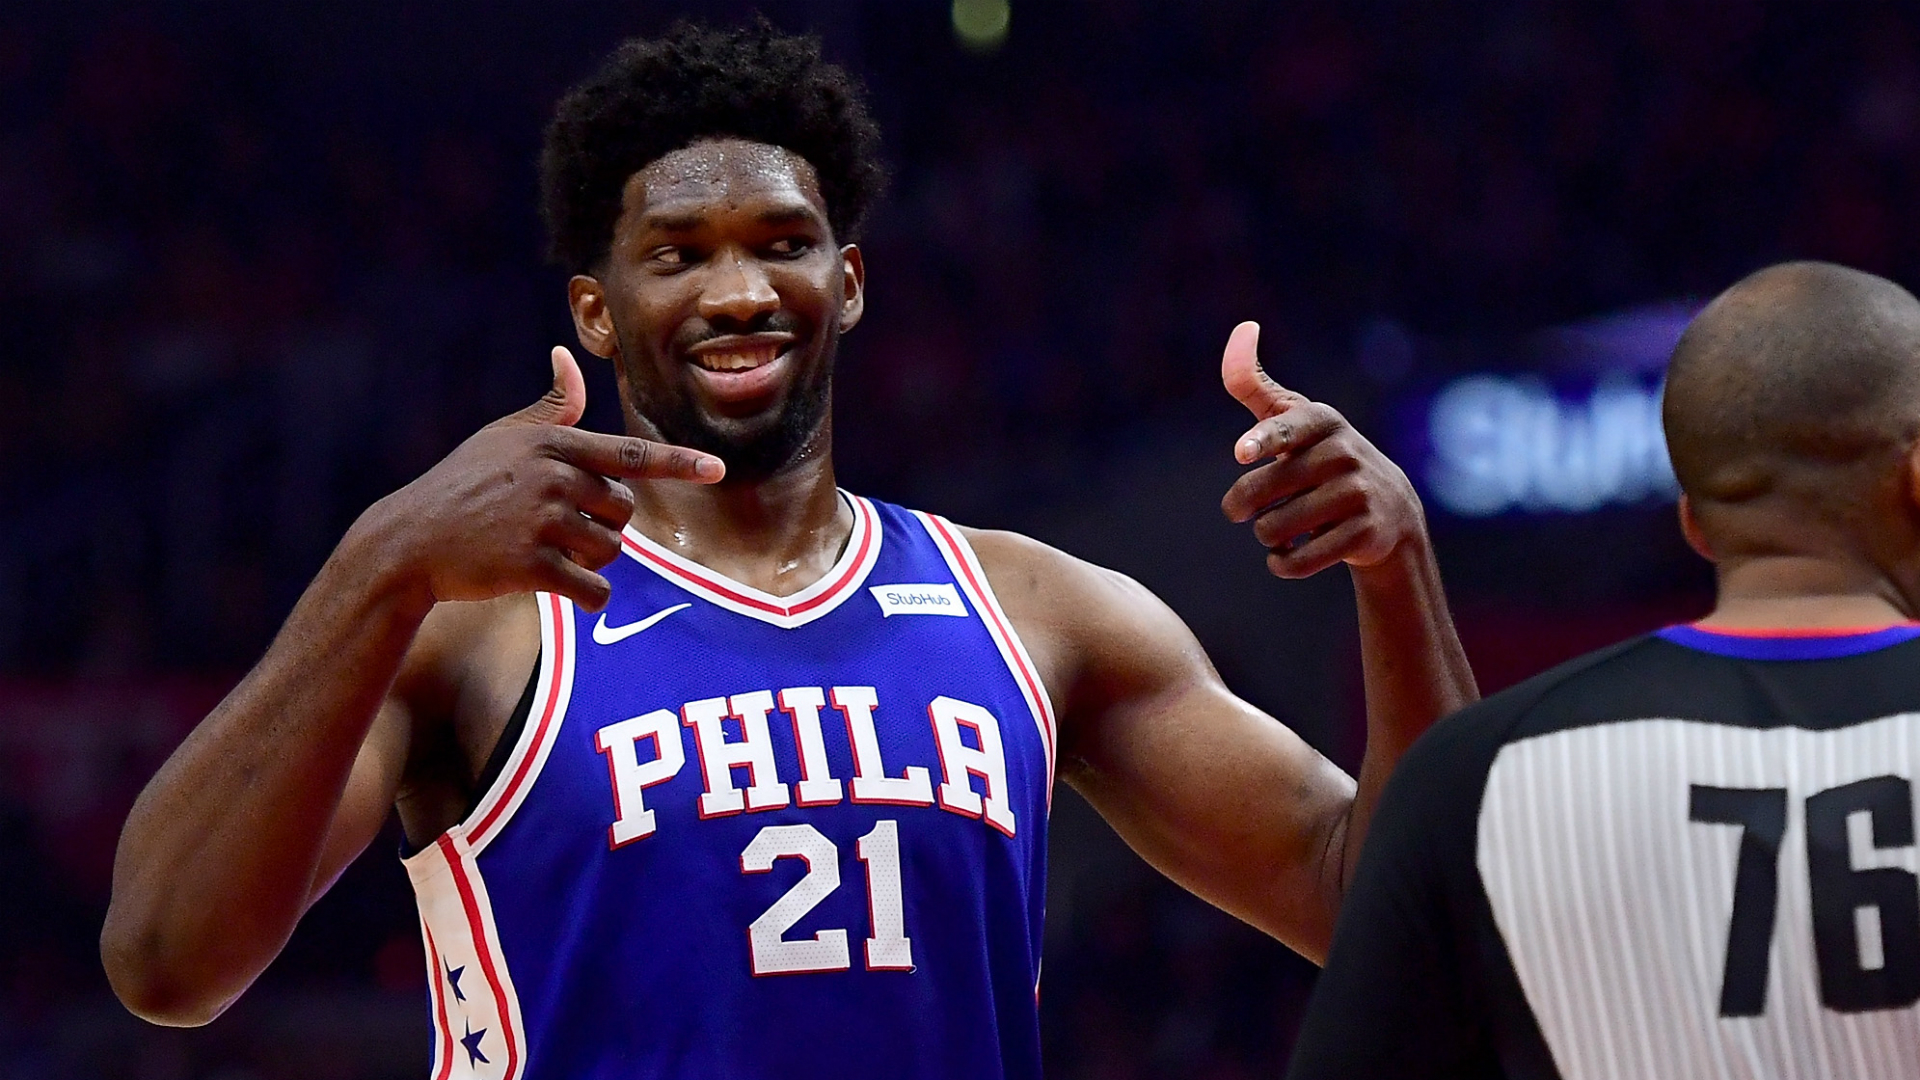 NBA wrap: Joel Embiid, 76ers blow big lead, rally for overtime win over Hornets